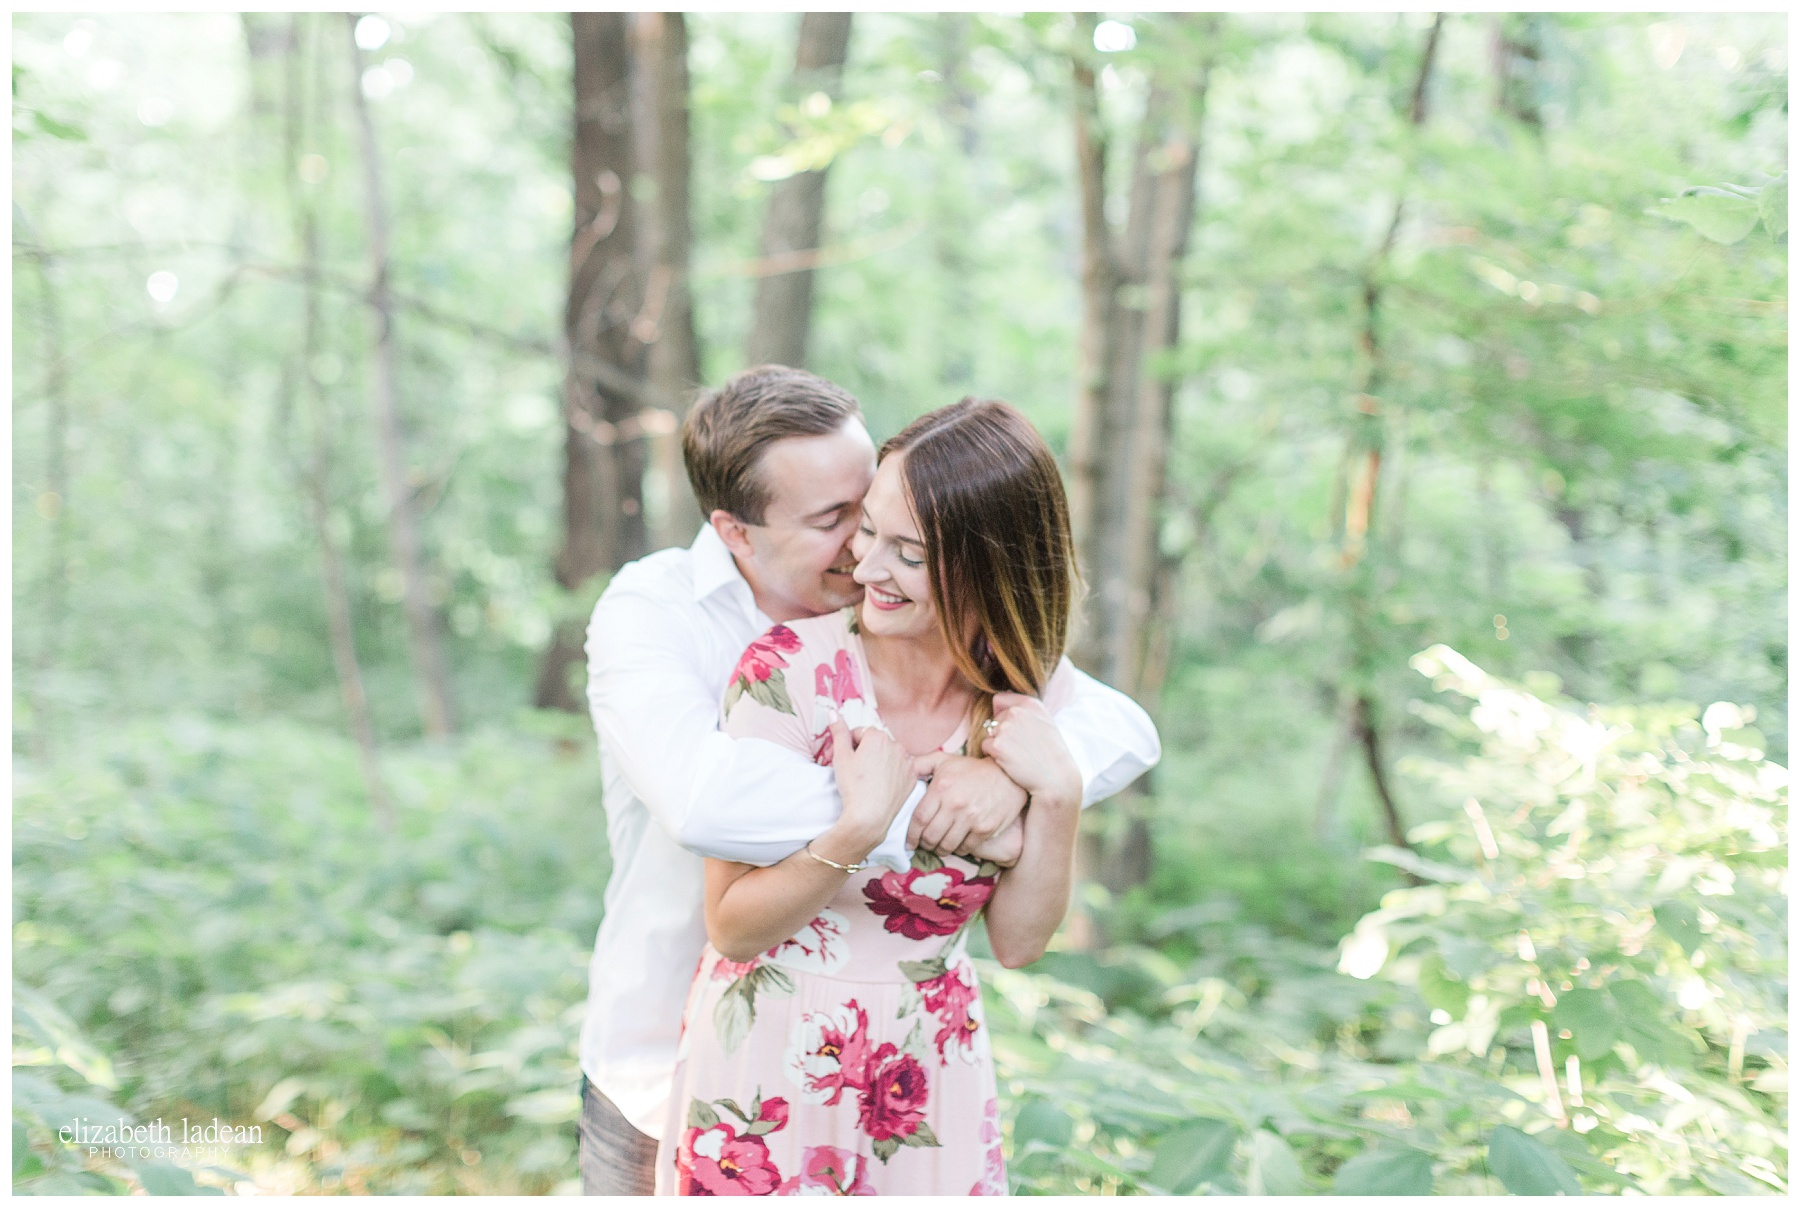 Floral dress engagement photos